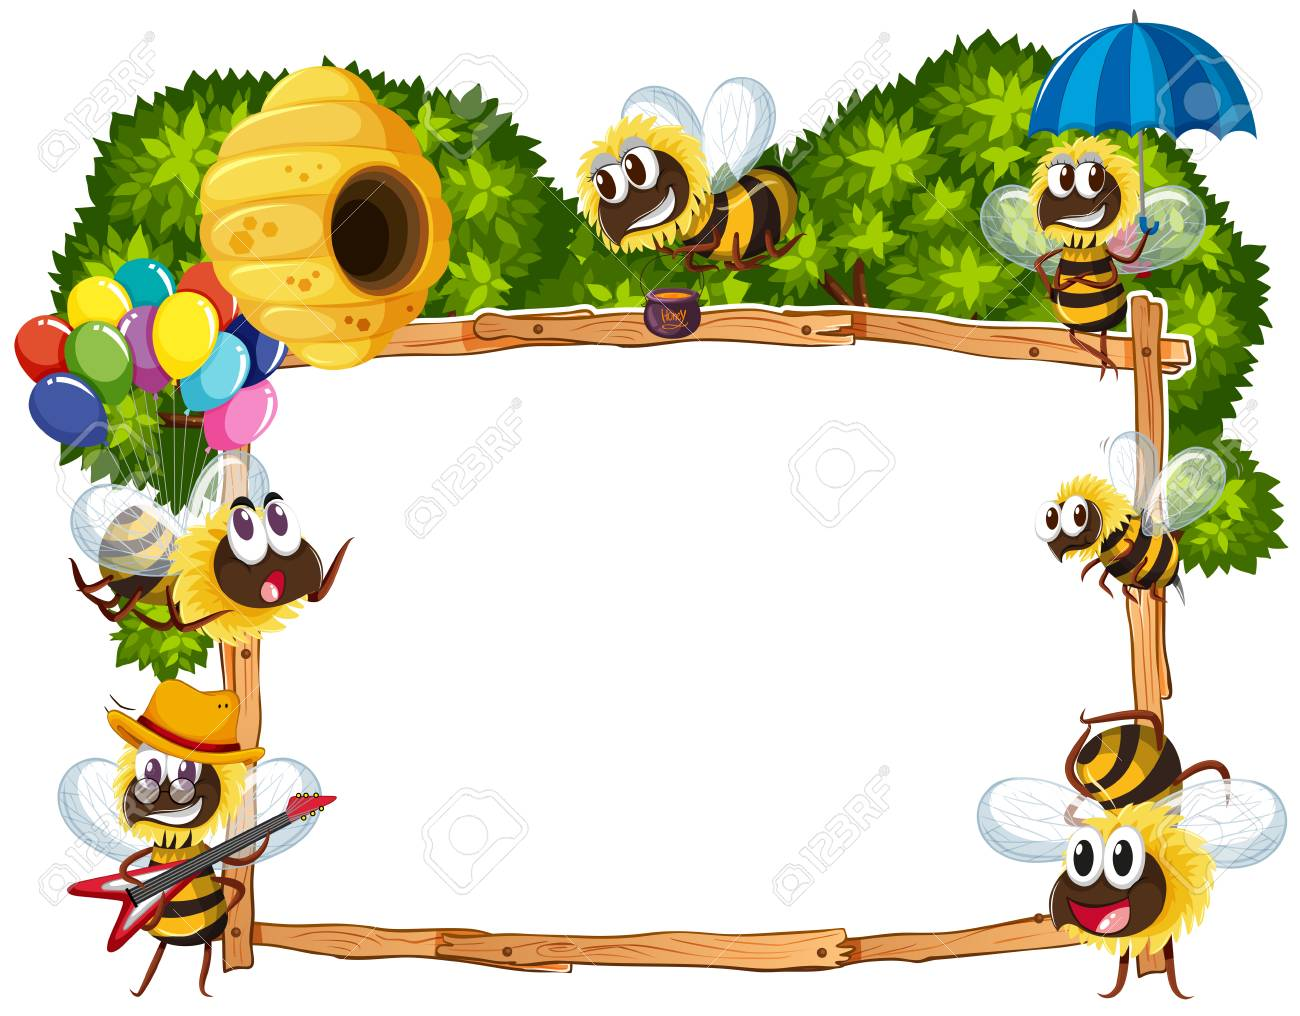 border template with bees flying illustration royalty free cliparts rh 123rf com